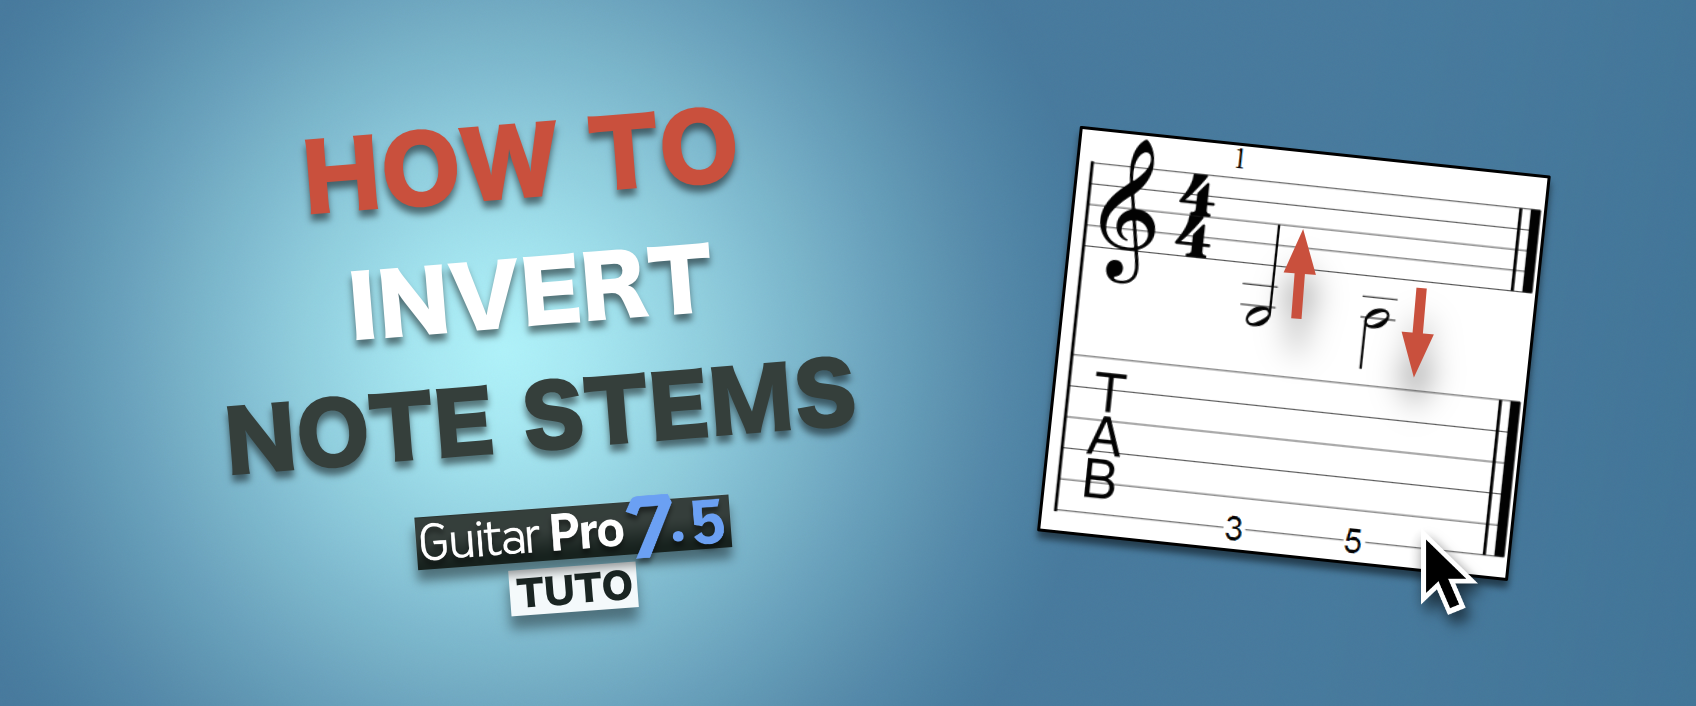 [QUICK TIP] Learn how to change the stem directions of notes